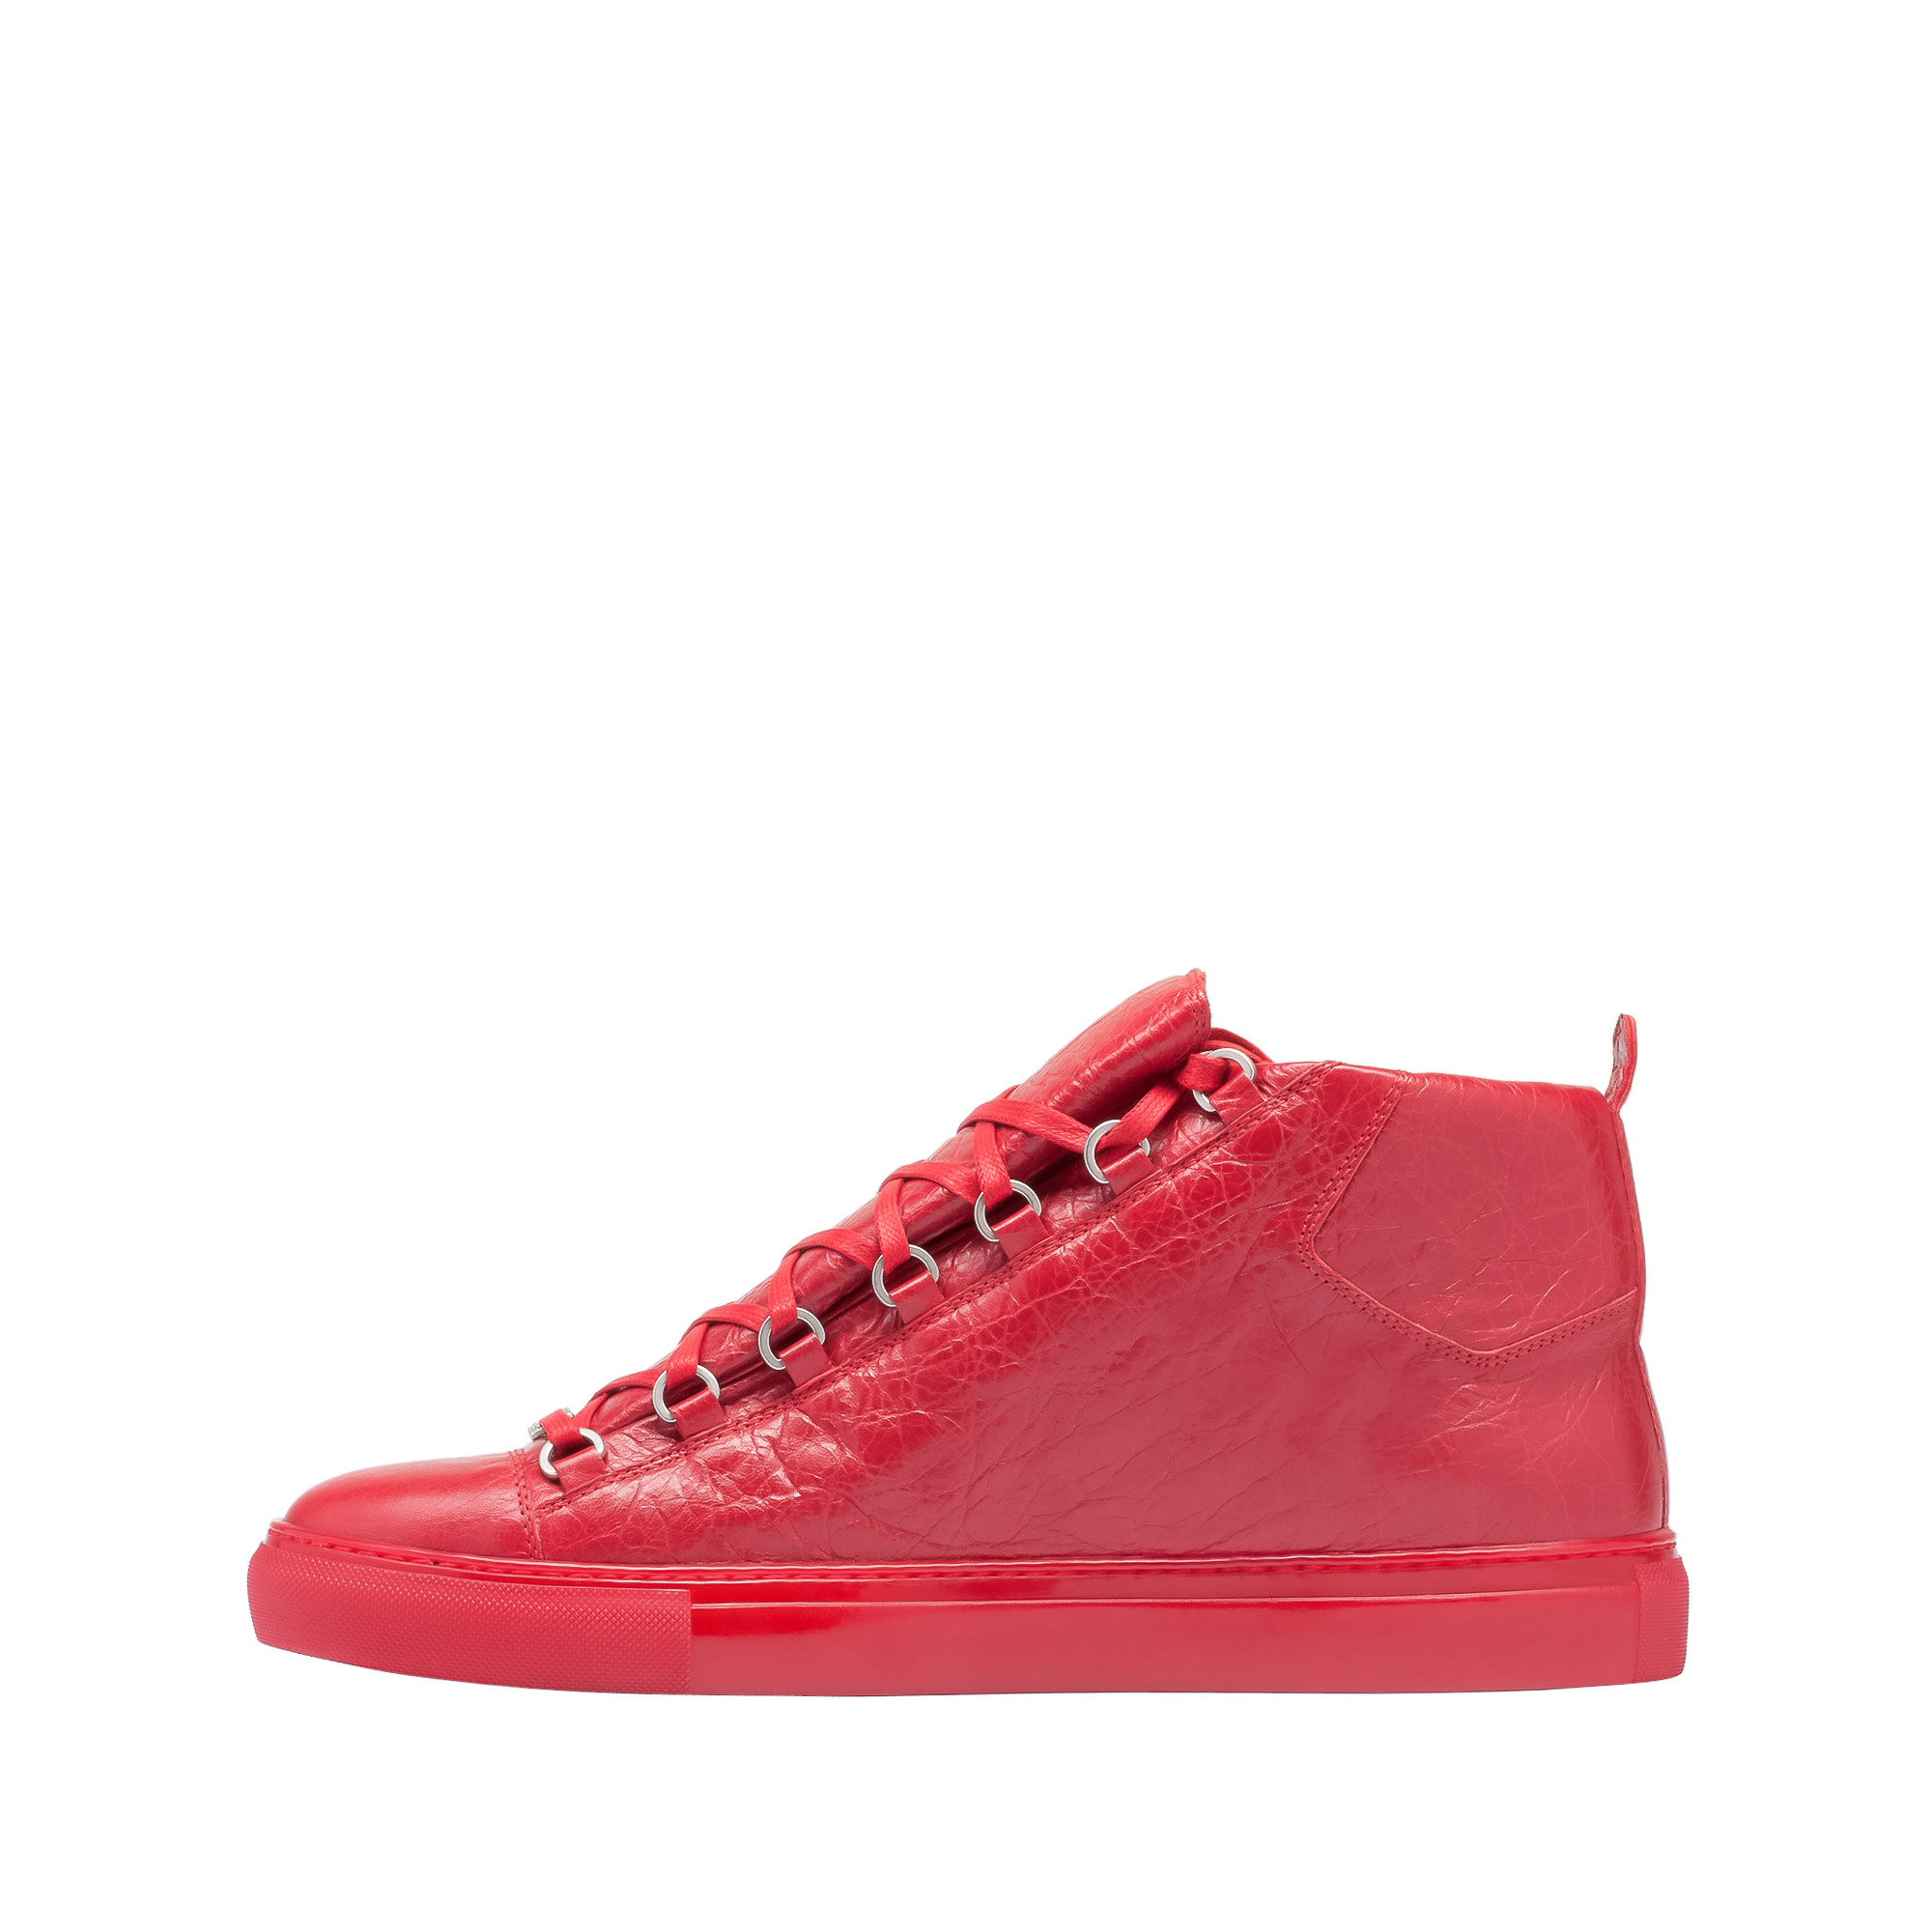 balenciaga arena high sneakers in red for men rouge